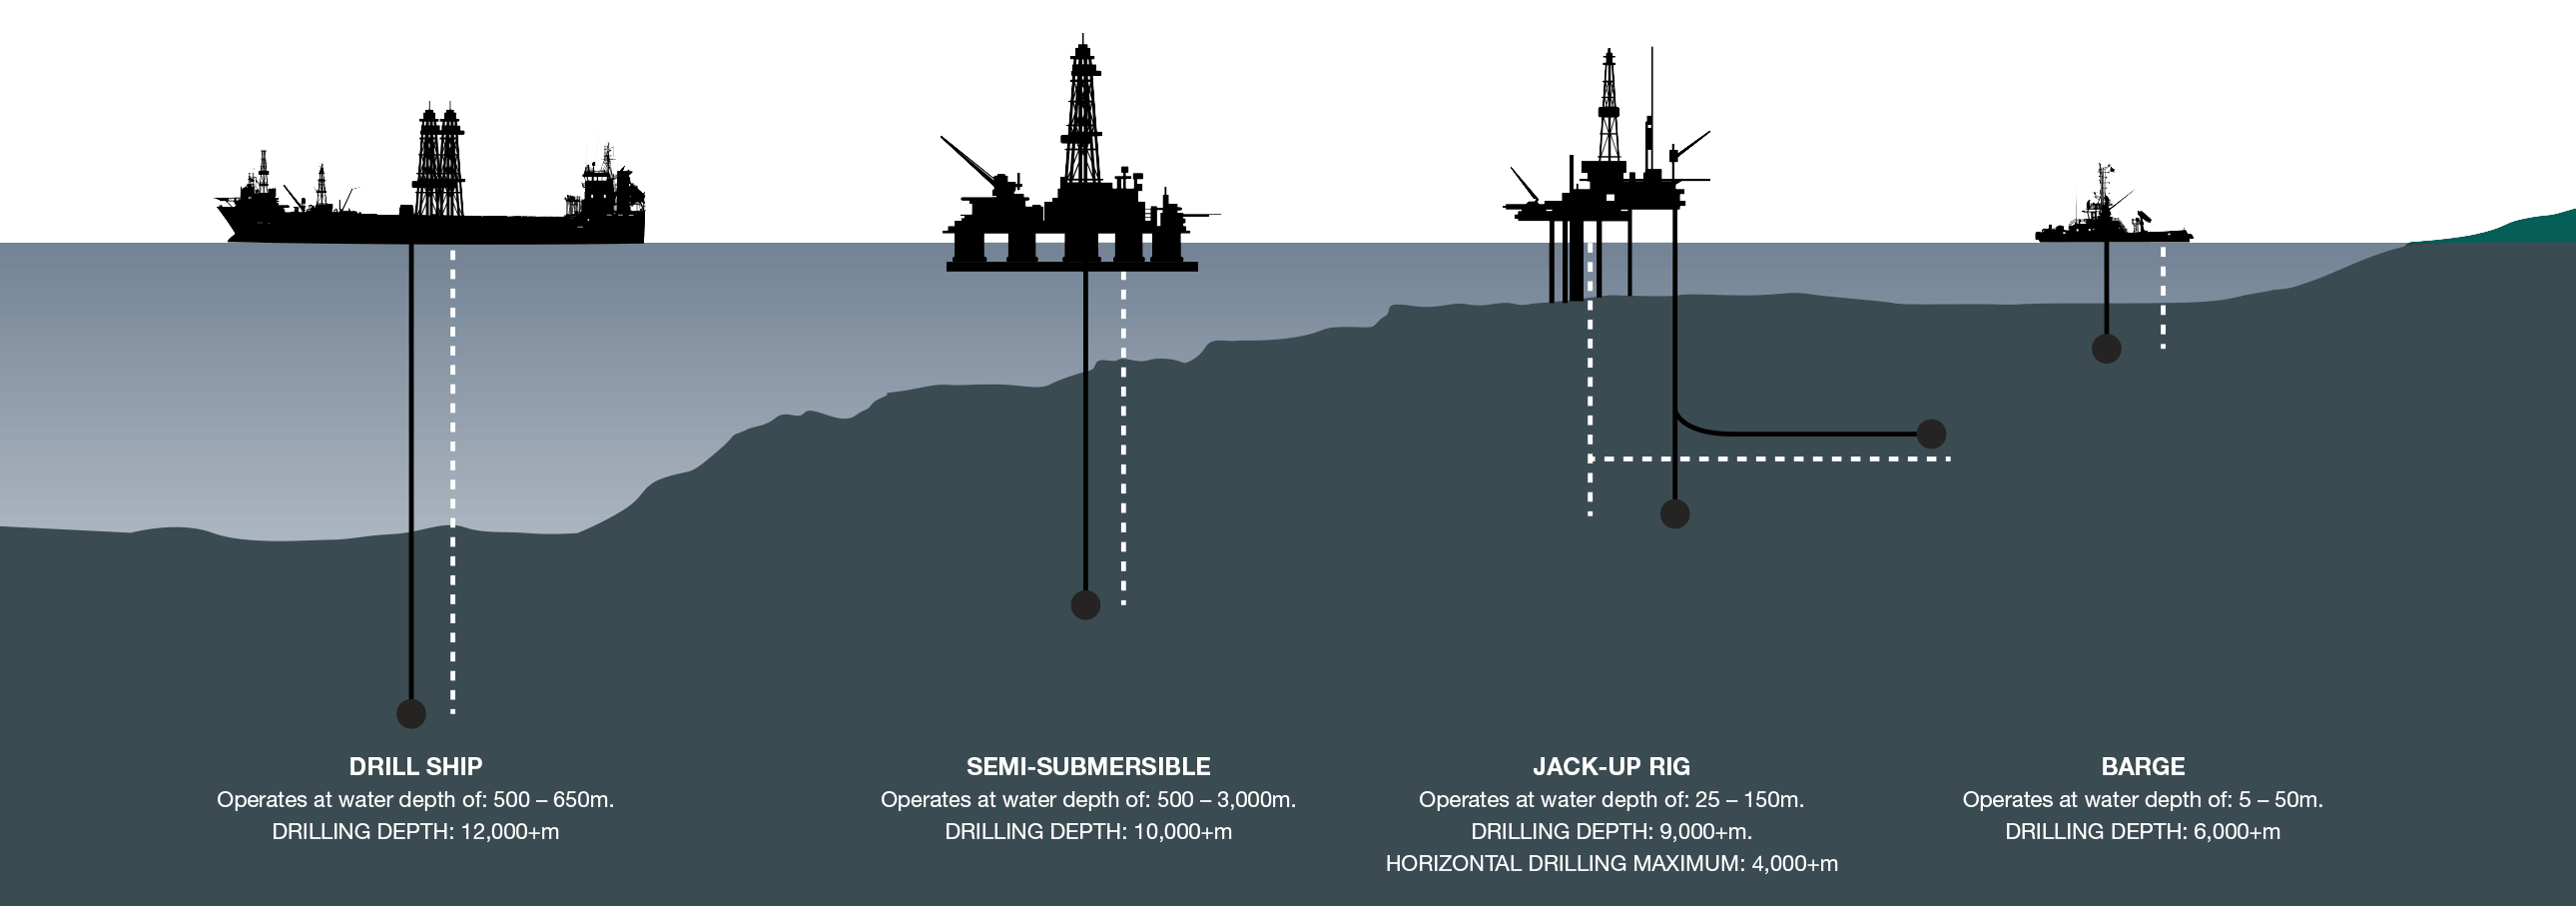 Valiant Offshore Drilling Rig Types